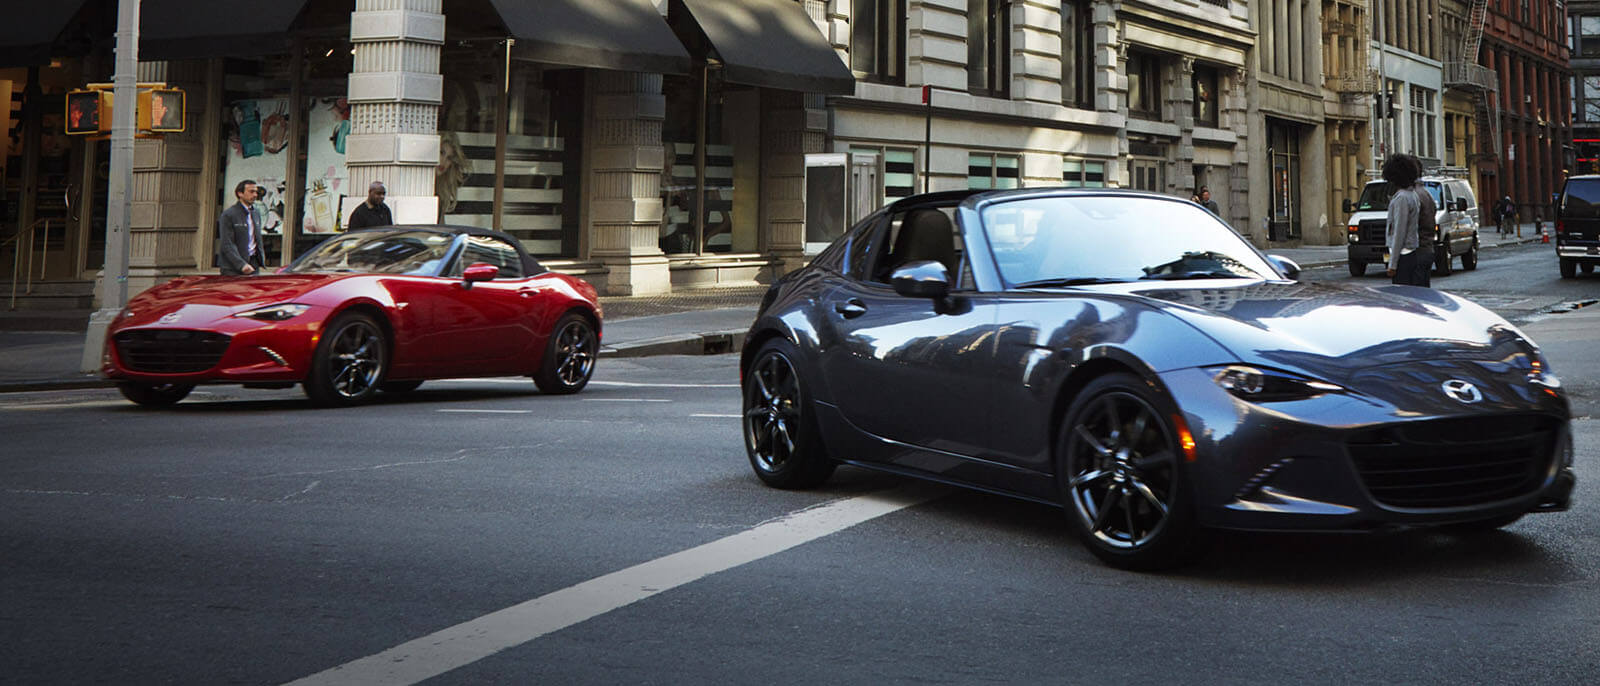 2017 Mazda MX-5 RF in red and blue